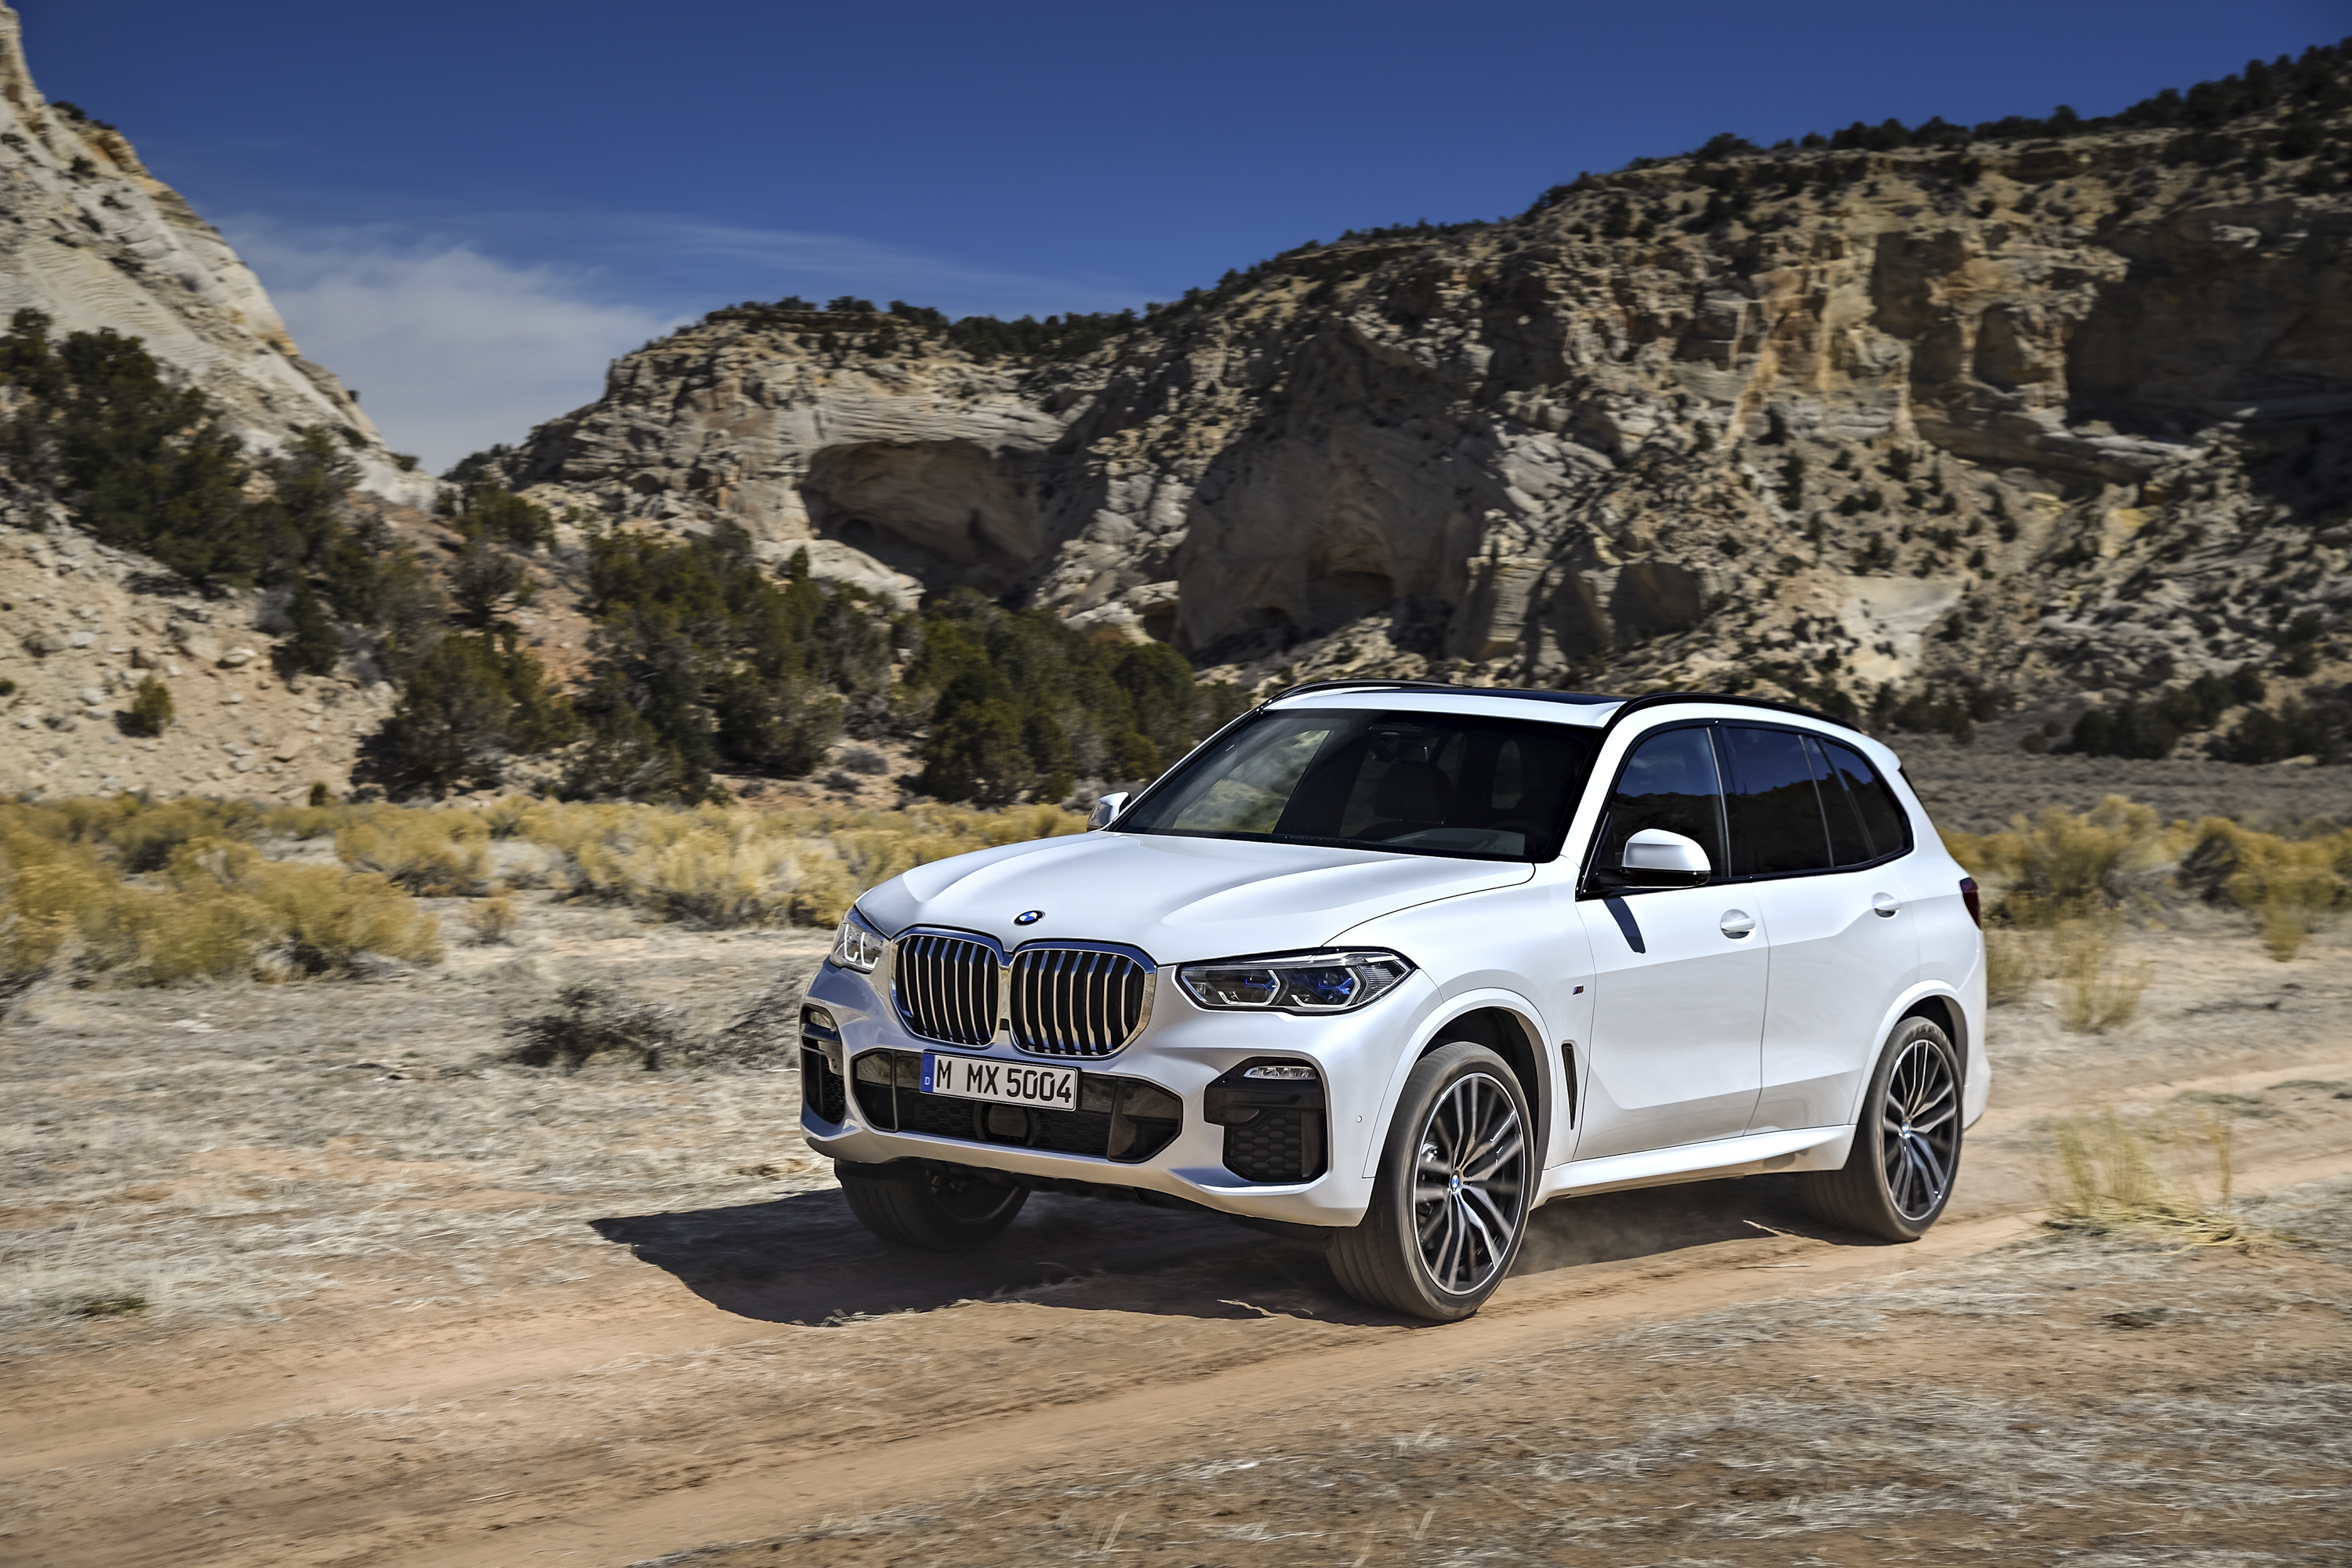 Bmw X5 Cargo Space >> The 2019 Bmw X5 Grew In Almost Every Way But Doesn T Deliver Where